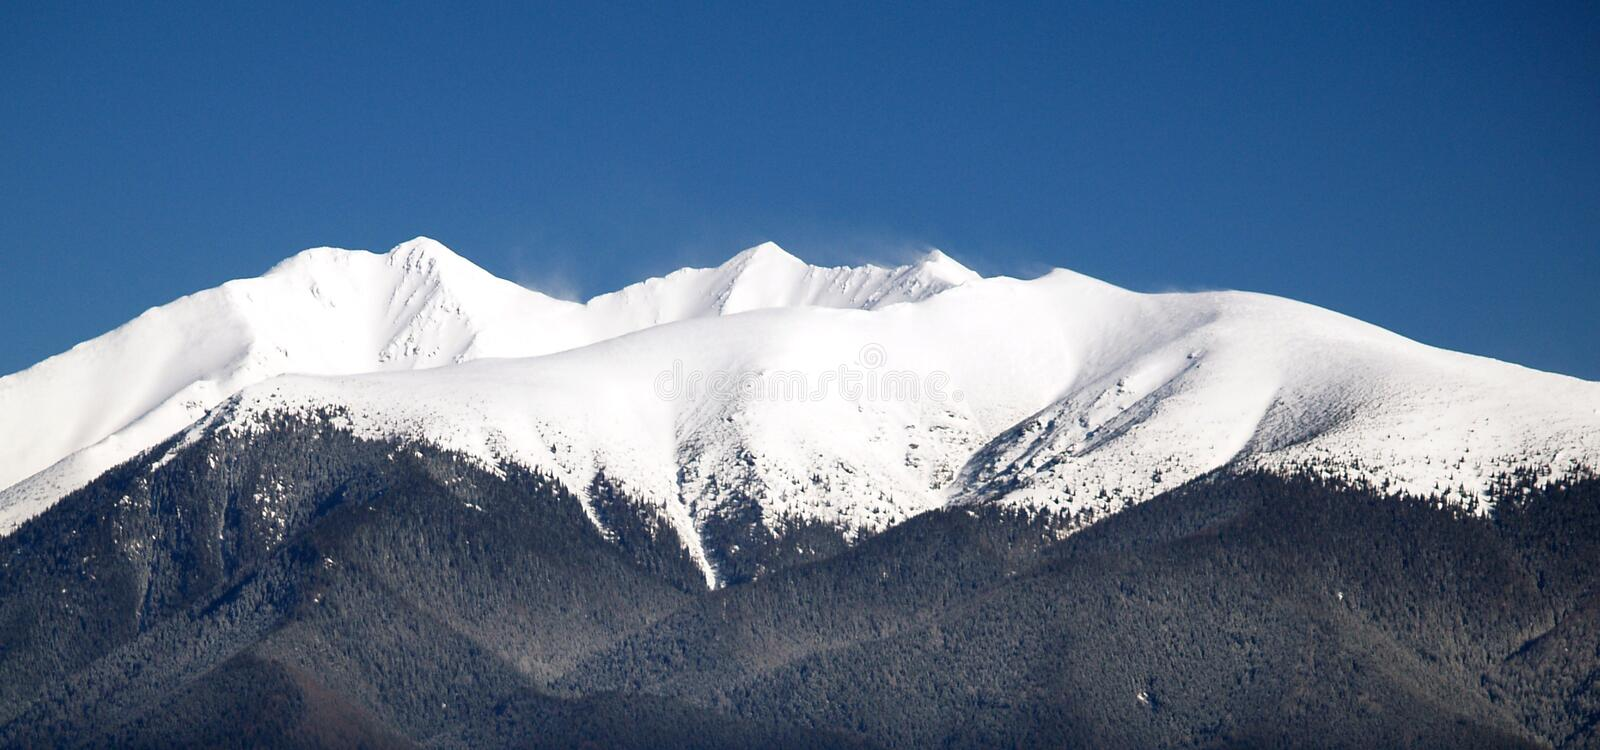 Peak of Rohace mountain. Peak of mountain named Rohace covered with snow, in Slovakia stock photography